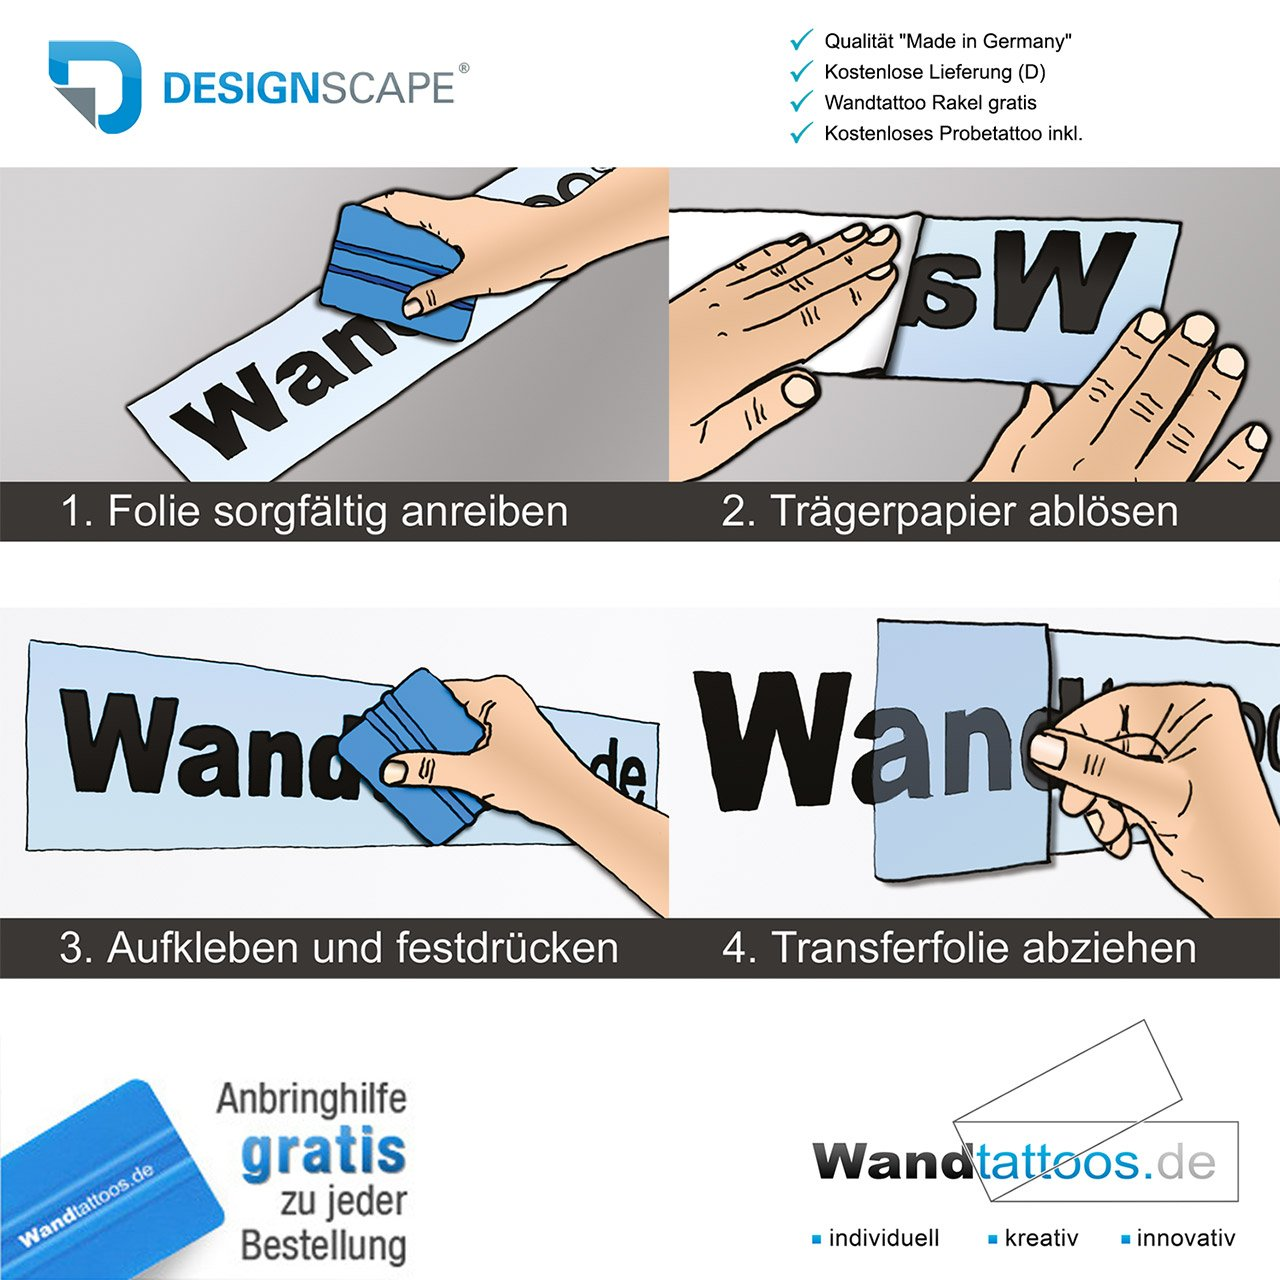 DESIGNSCAPE® Wandtattoo Training Begriffe   Wortwolke zur Motivation     Wandtattoo Sport 120 x 62 cm (Breite x Höhe) dunkelrot DW803439-M-F21 B072DWJF7D Wandtattoos & Wandbilder 0822f8